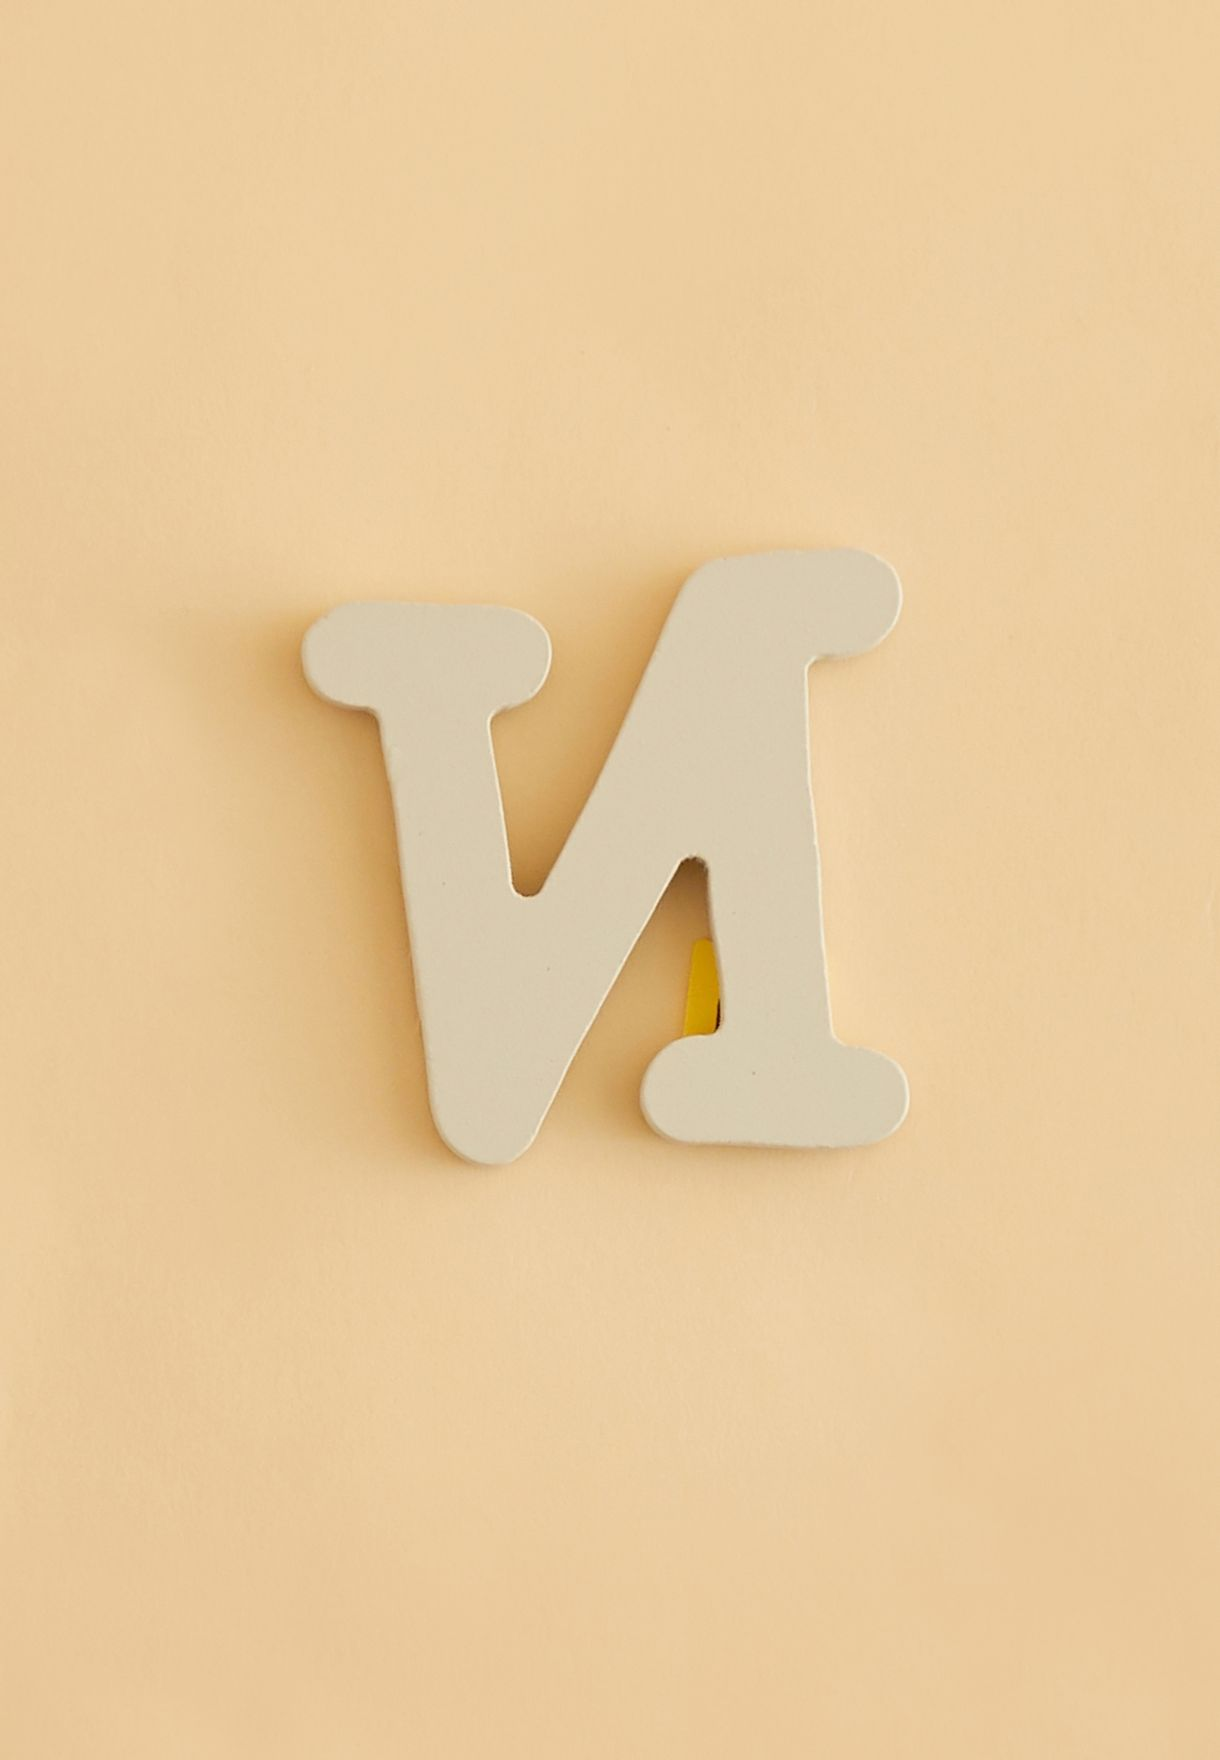 Initial N Wooden Letter